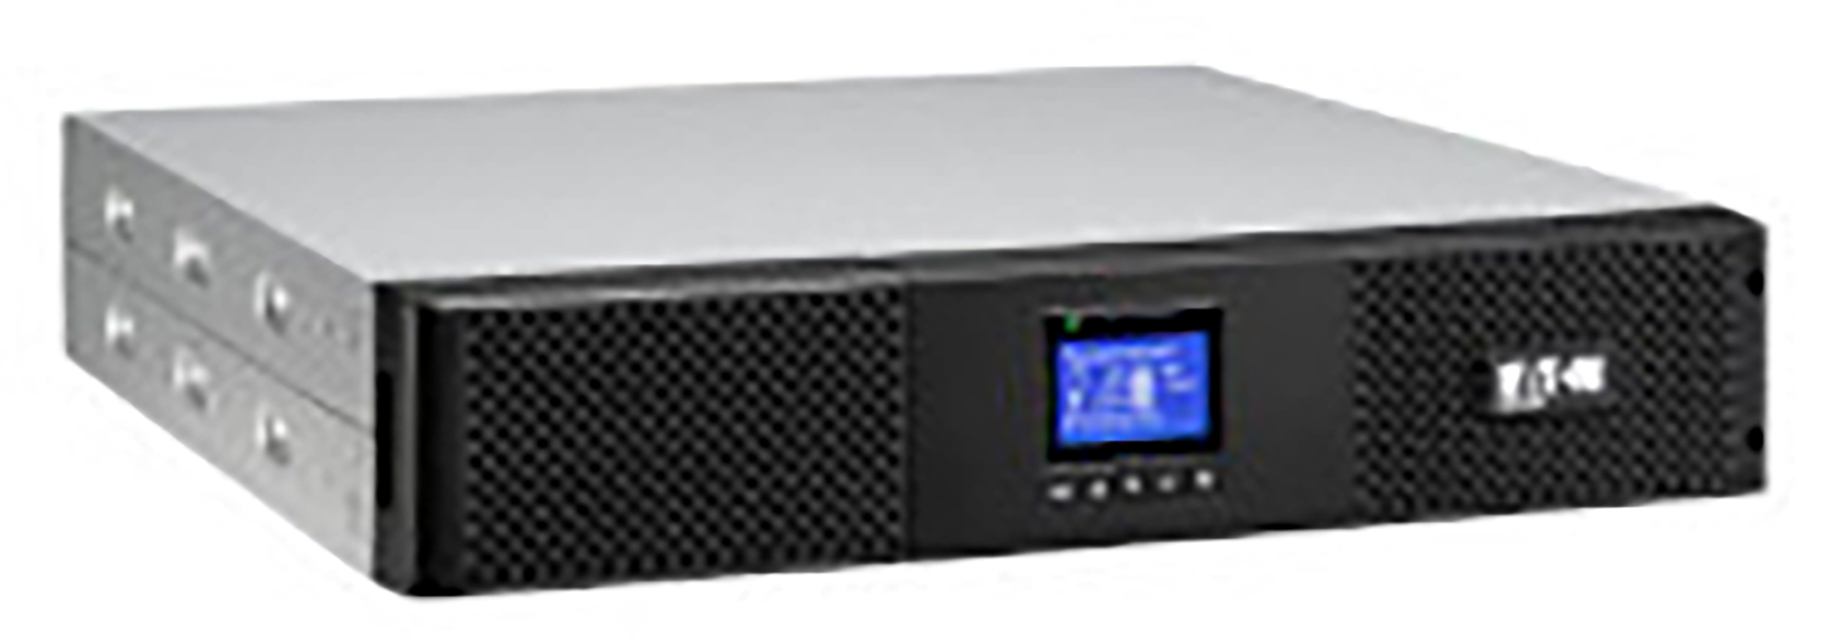 EATON 9SX1000IR 9SX UNINTERRUPTIBLE POWER SUPPLY (UPS) 1000 VA 7 AC OUTLET(S) DOUBLE-CONVERSION (ONLINE)